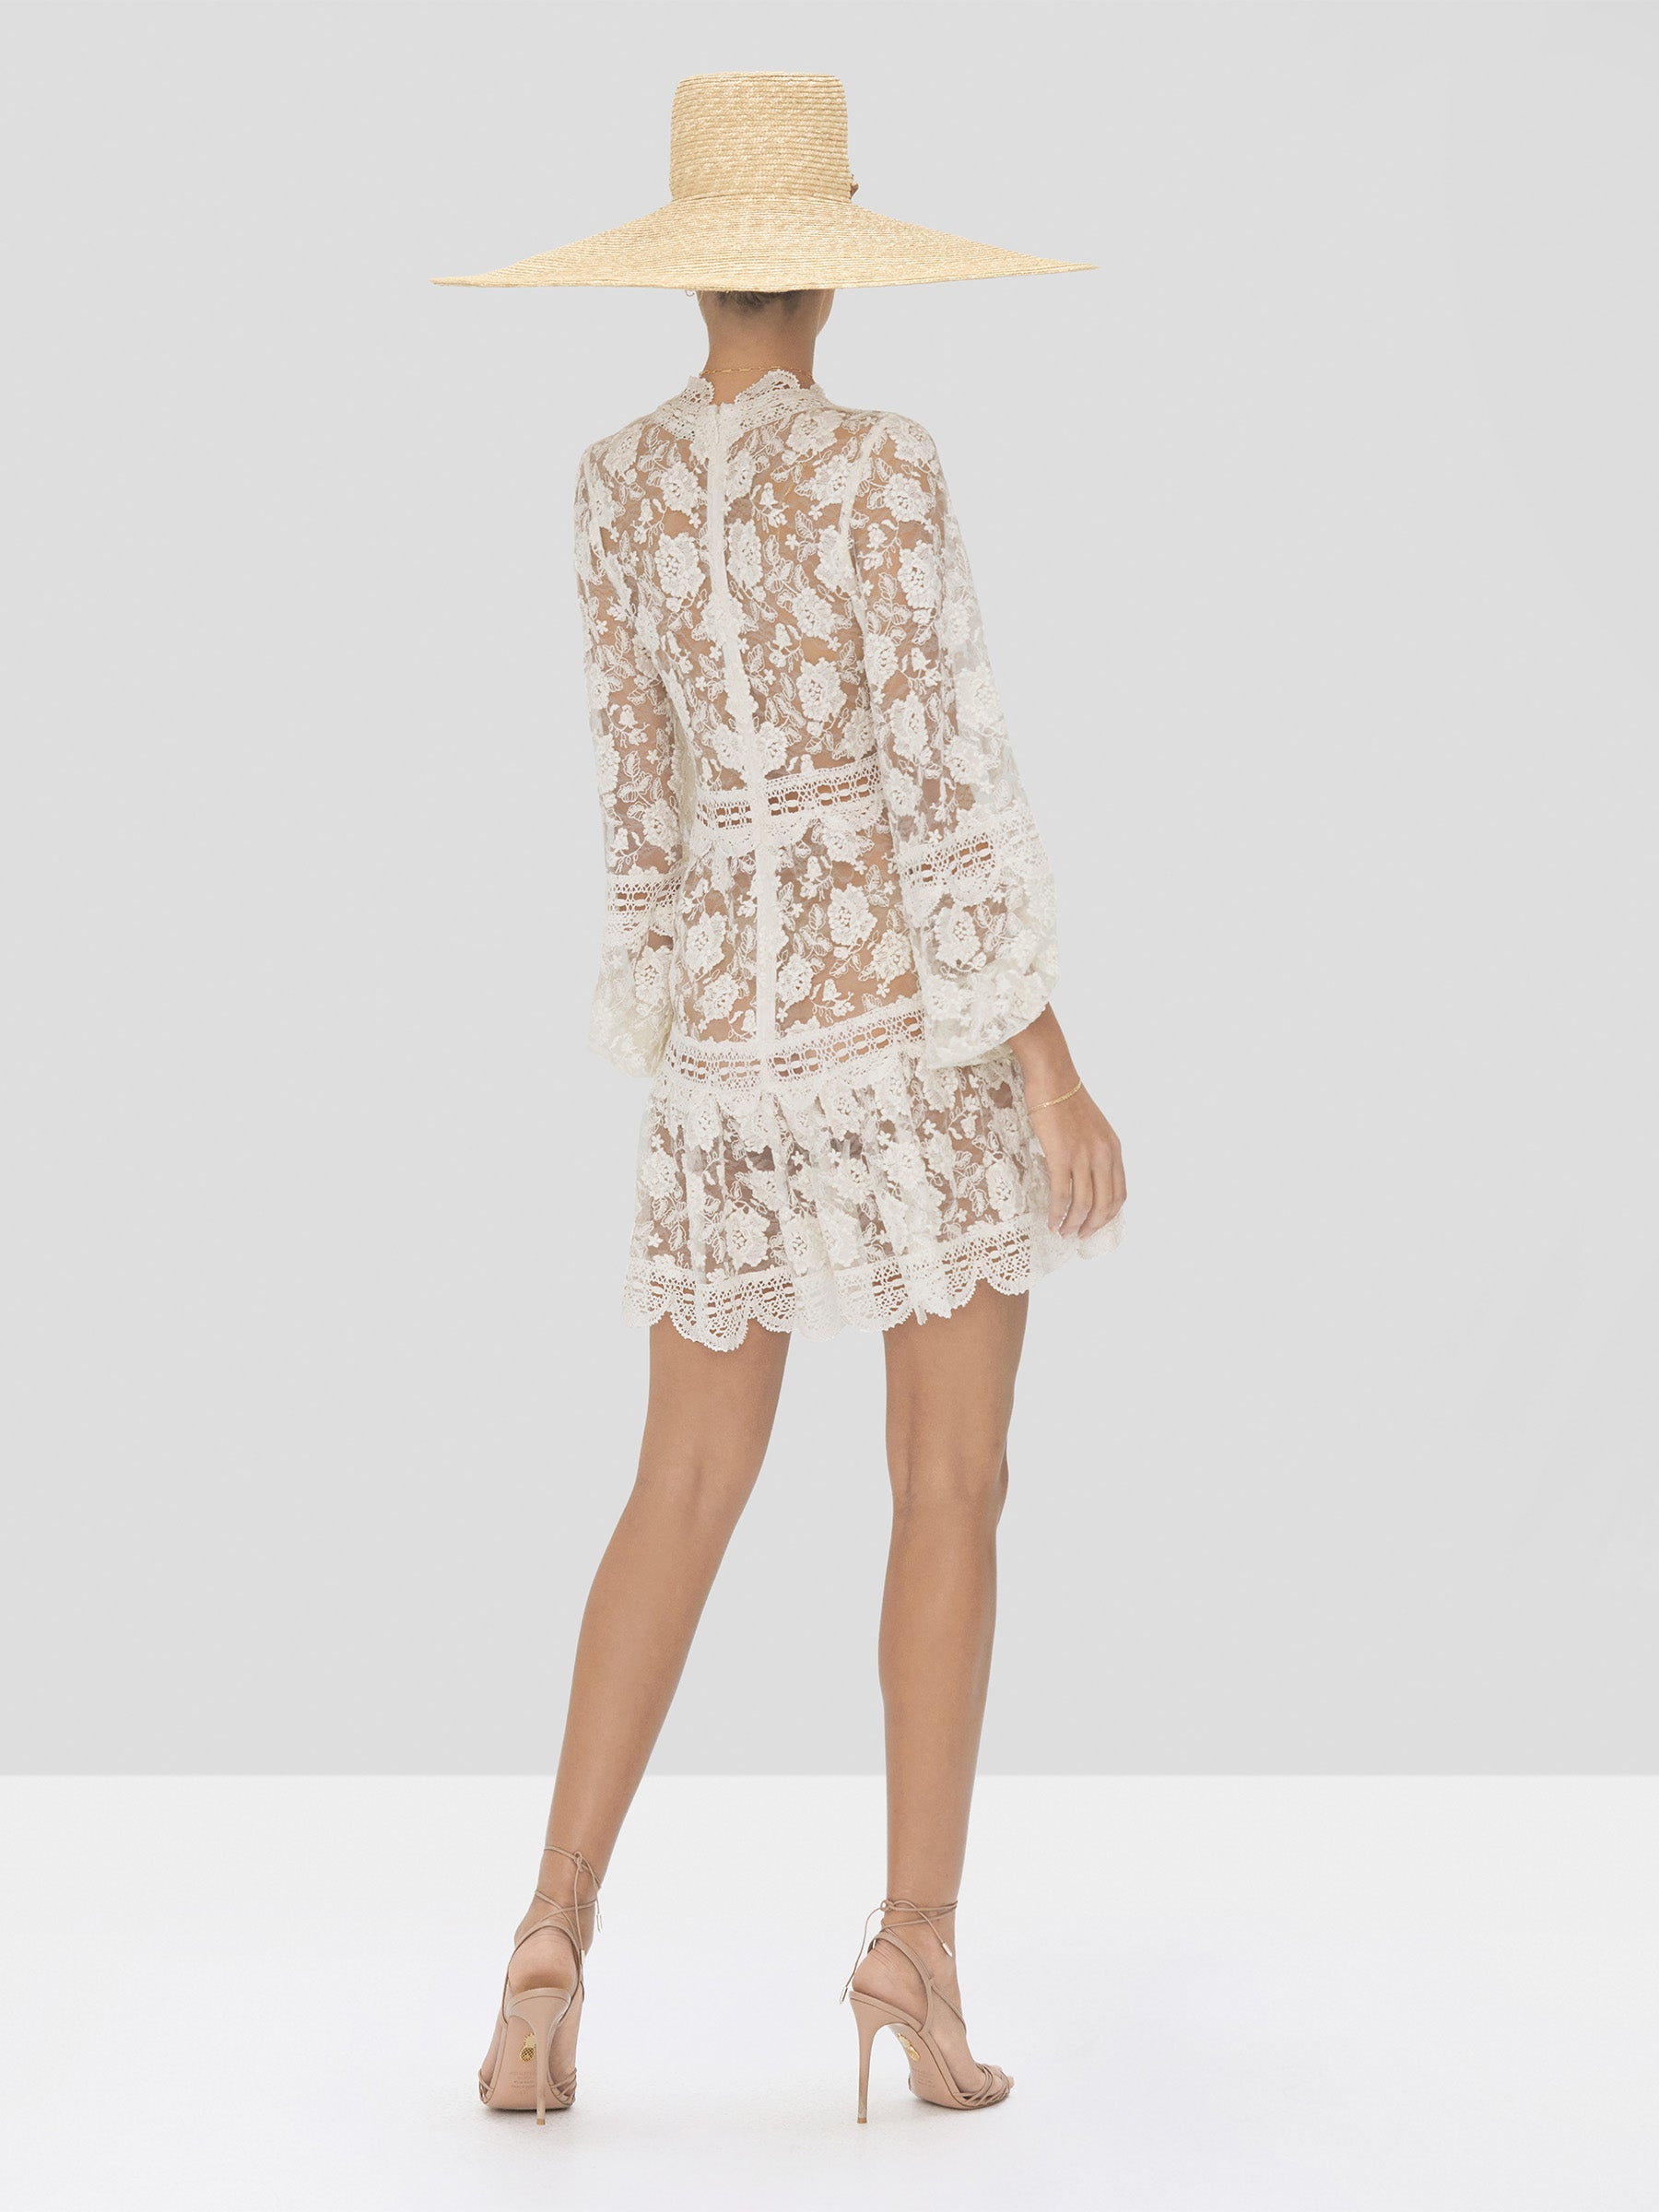 Alexis Preena Dress in White from Spring Summer 2020 Collection - Rear View